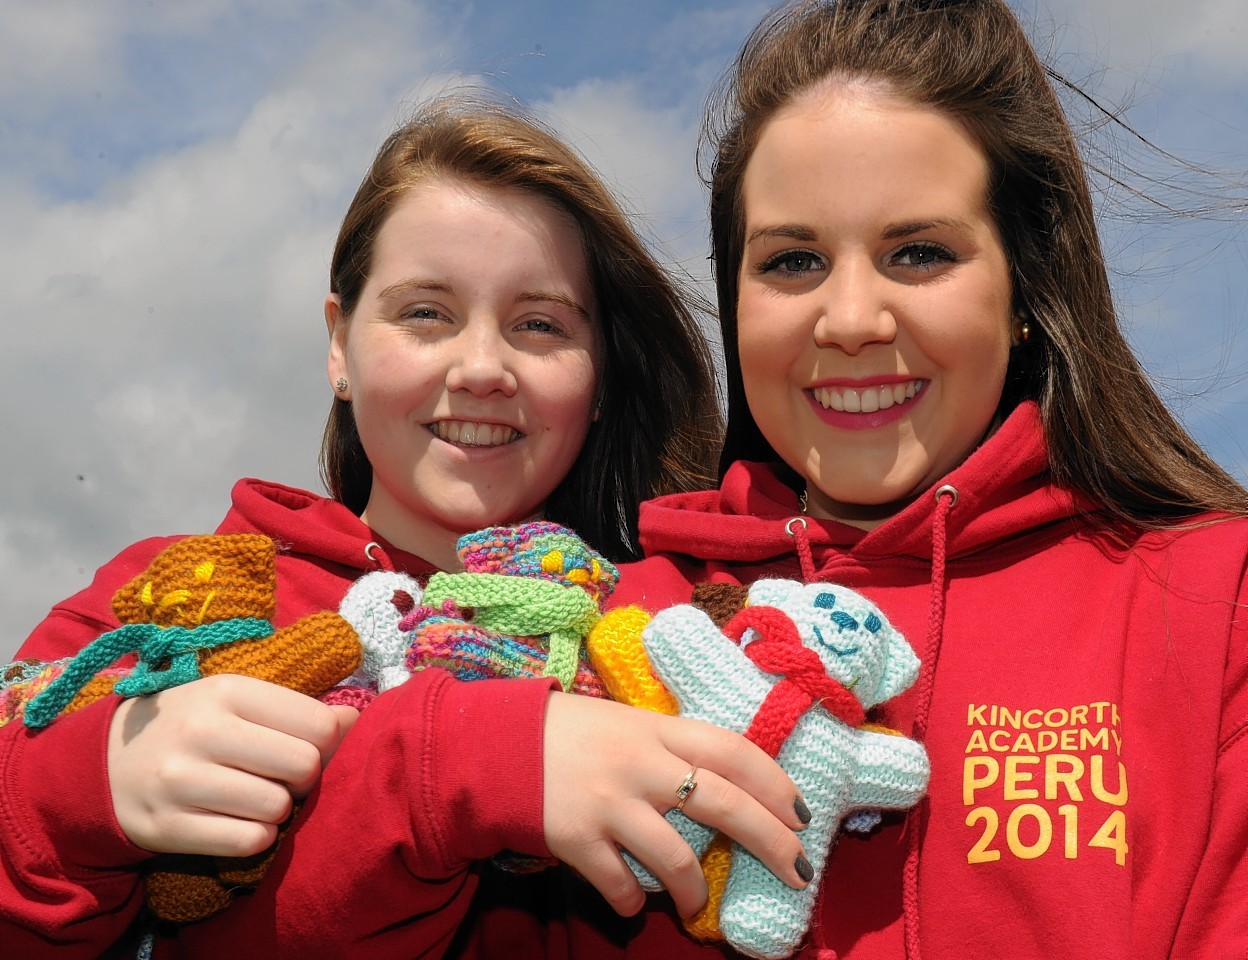 Kincorth Academy Aberdeen - pupils from the school are going to Peru to help orphans. One of the pupils grandmother has knitted over 60 teddies which they will take. (from left) Ailsa Ross, 17 (whose grandmother knitted over 60 teddies to take with them) and Aimee Gray, 16.